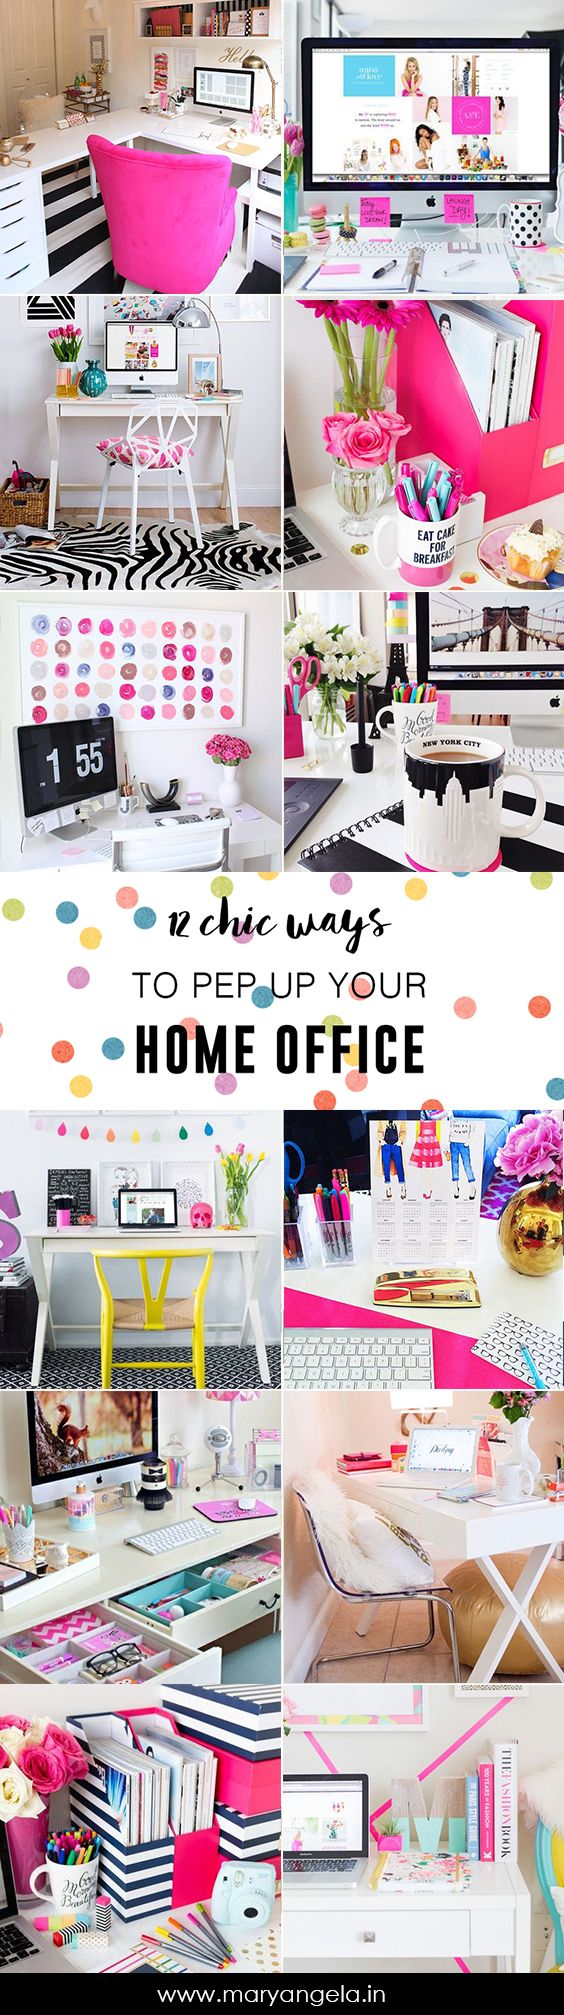 Now that you have decided to work from home, you need a designated work space. If you already have one and are looking for ways to make it jump to life so you can't wait to sit down to work, look no further! This list encompasses 12 Chic ways to Pep Up Your Home Office. Buckle down and go crazy on decor, starting NOW! 1. Get a really comfortable (and mighty cute) chair. Image Source A Queen is nothing without her throne. If you are sitting at your desk all morning, you will need to make…